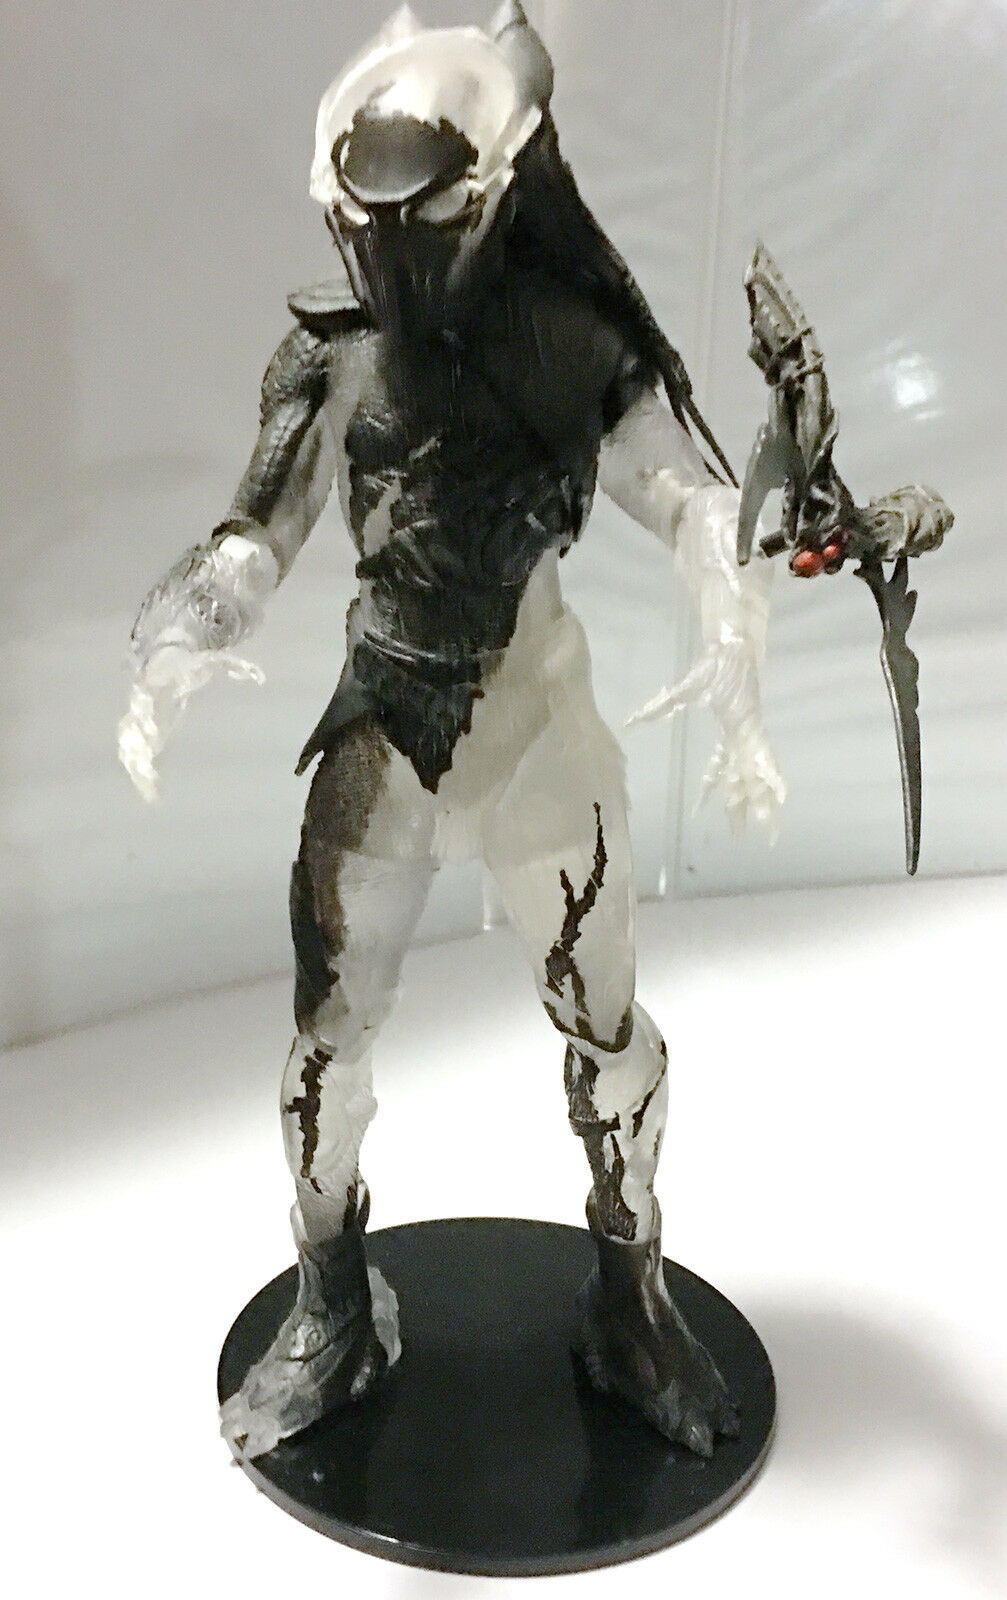 FALCONER PREDATOR • C9 • NECA PREDATORS SERIES 7